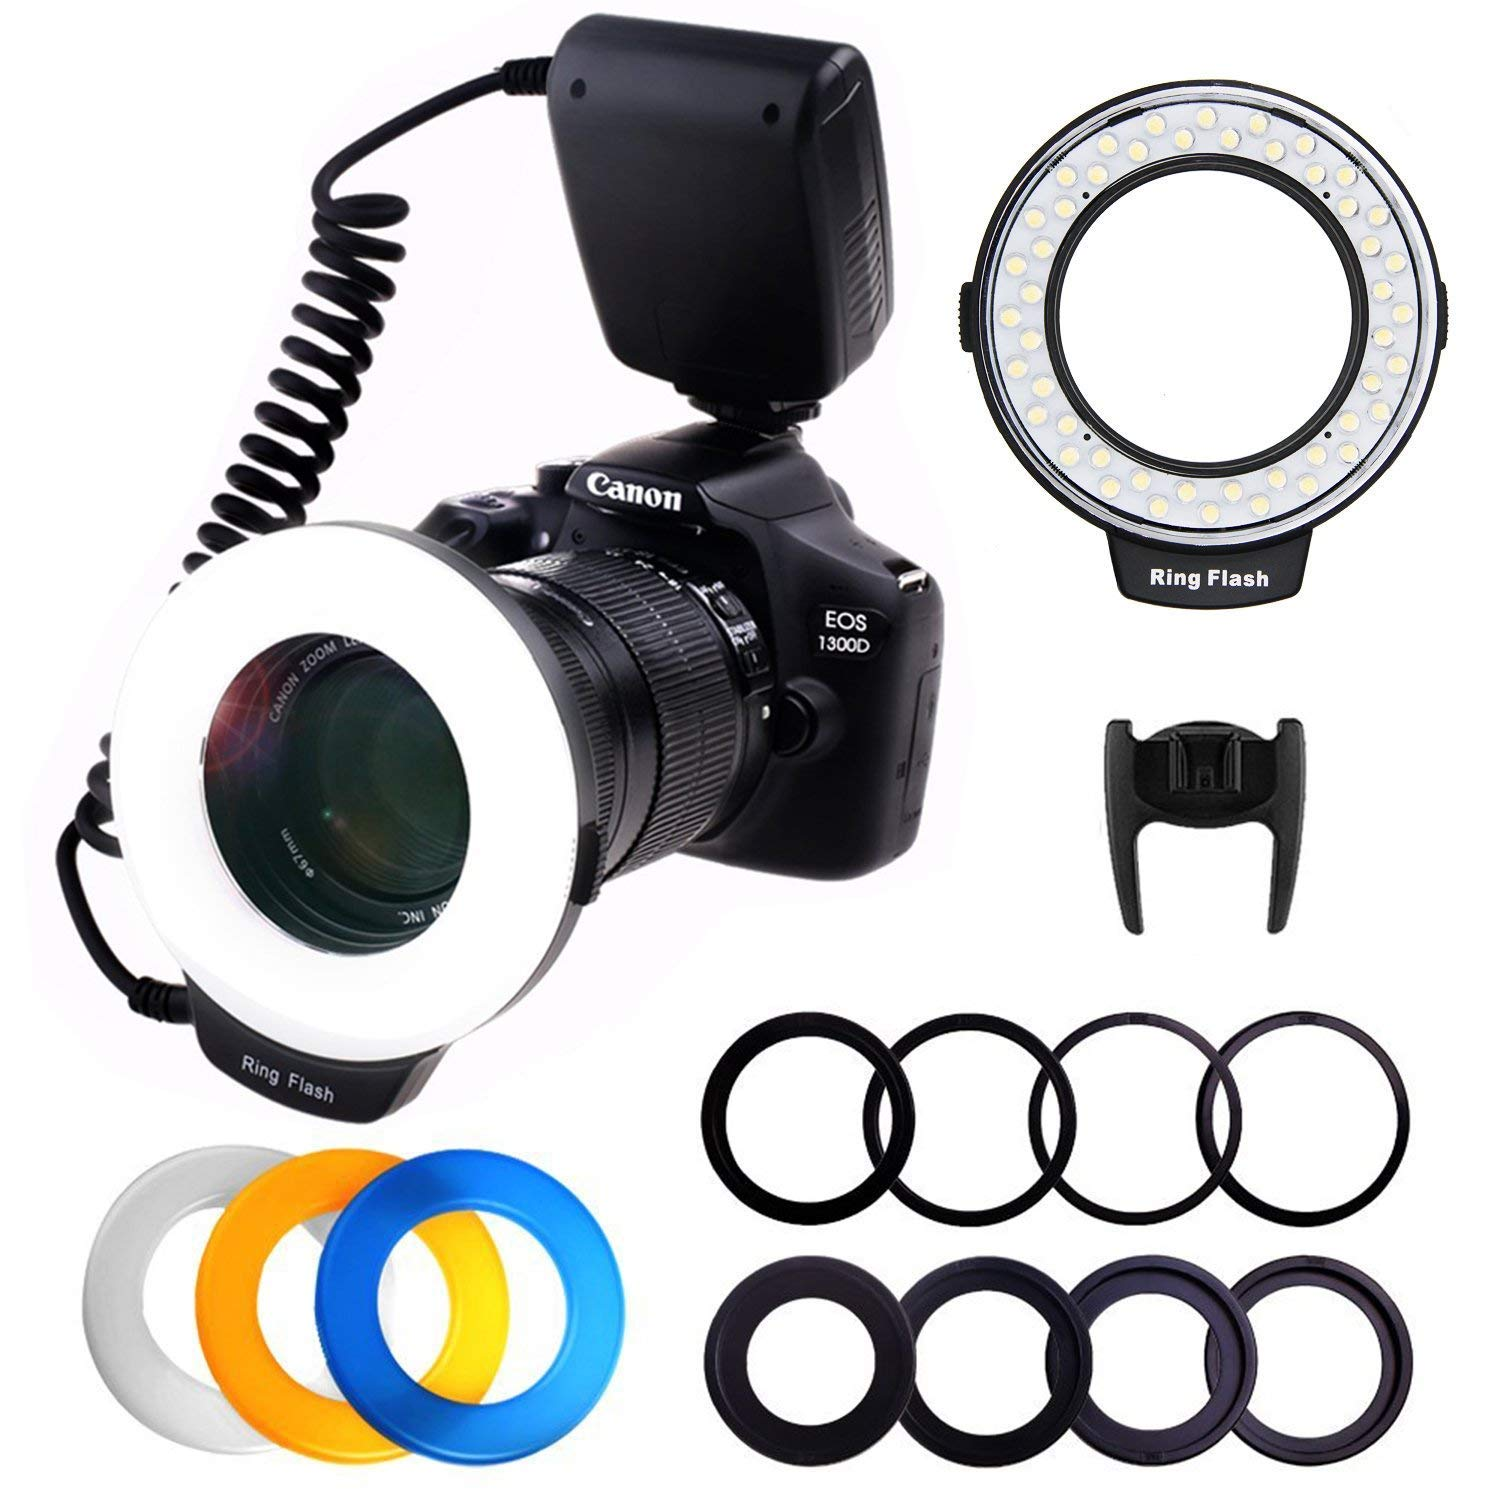 PLOTURE Flash Light with LCD Display Adapter Rings and Flash Diff-Users for Canon Nikon and Other DSLR Cameras by PLOTURE